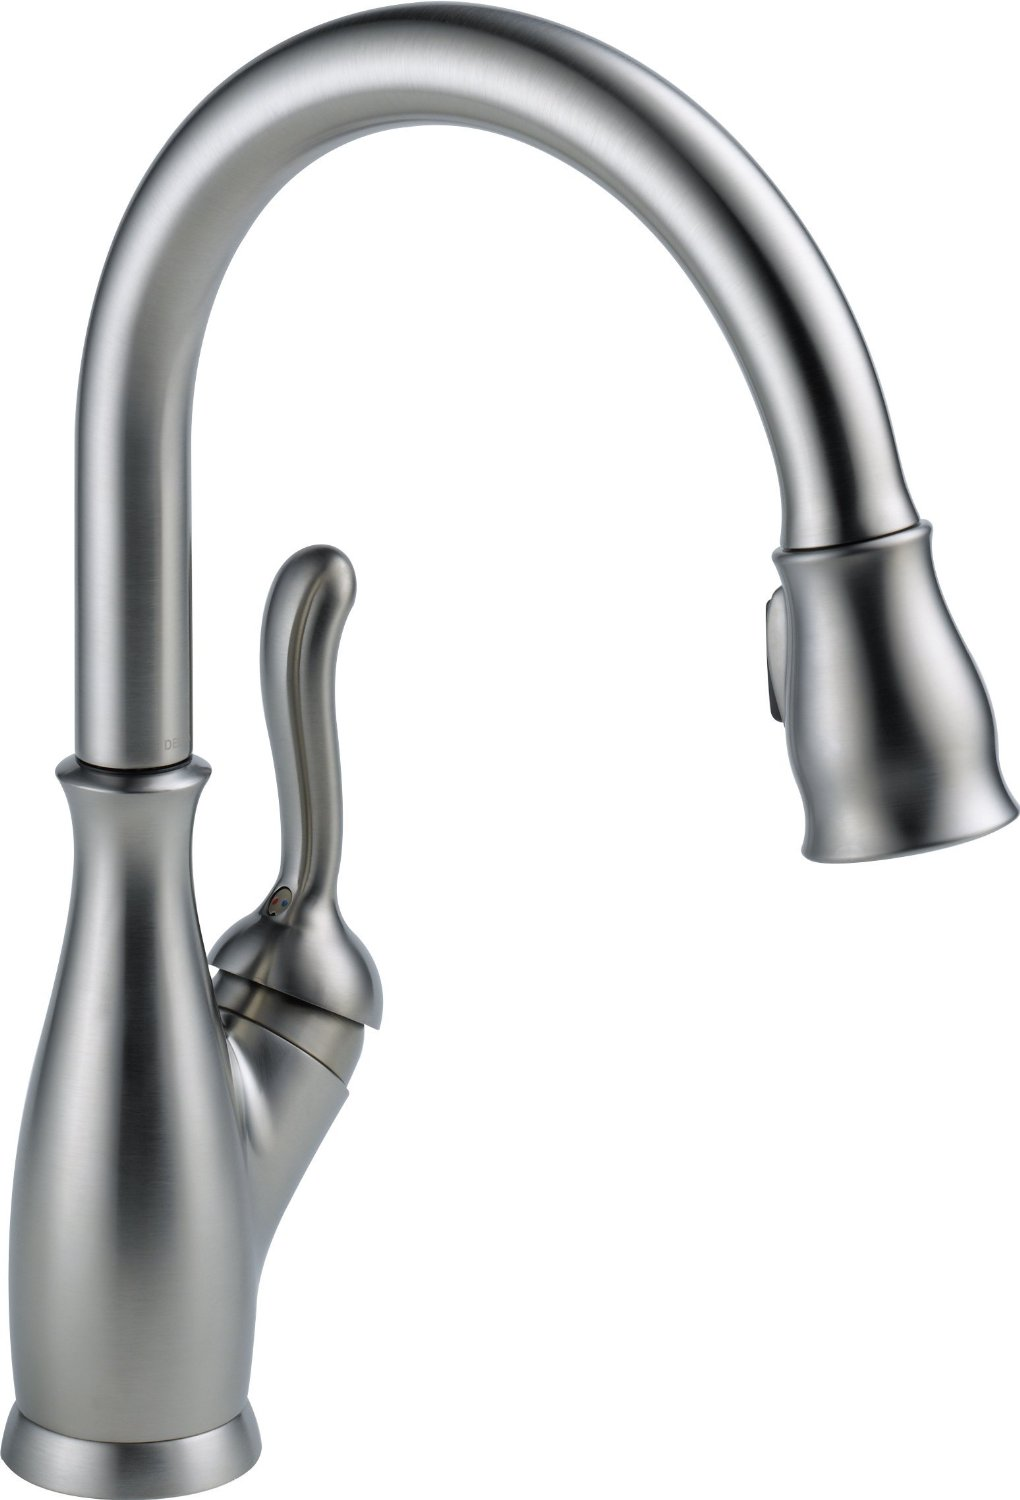 Kitchen Faucets | Home Depot Kitchen Sink Faucets | Gold Kitchen Faucet